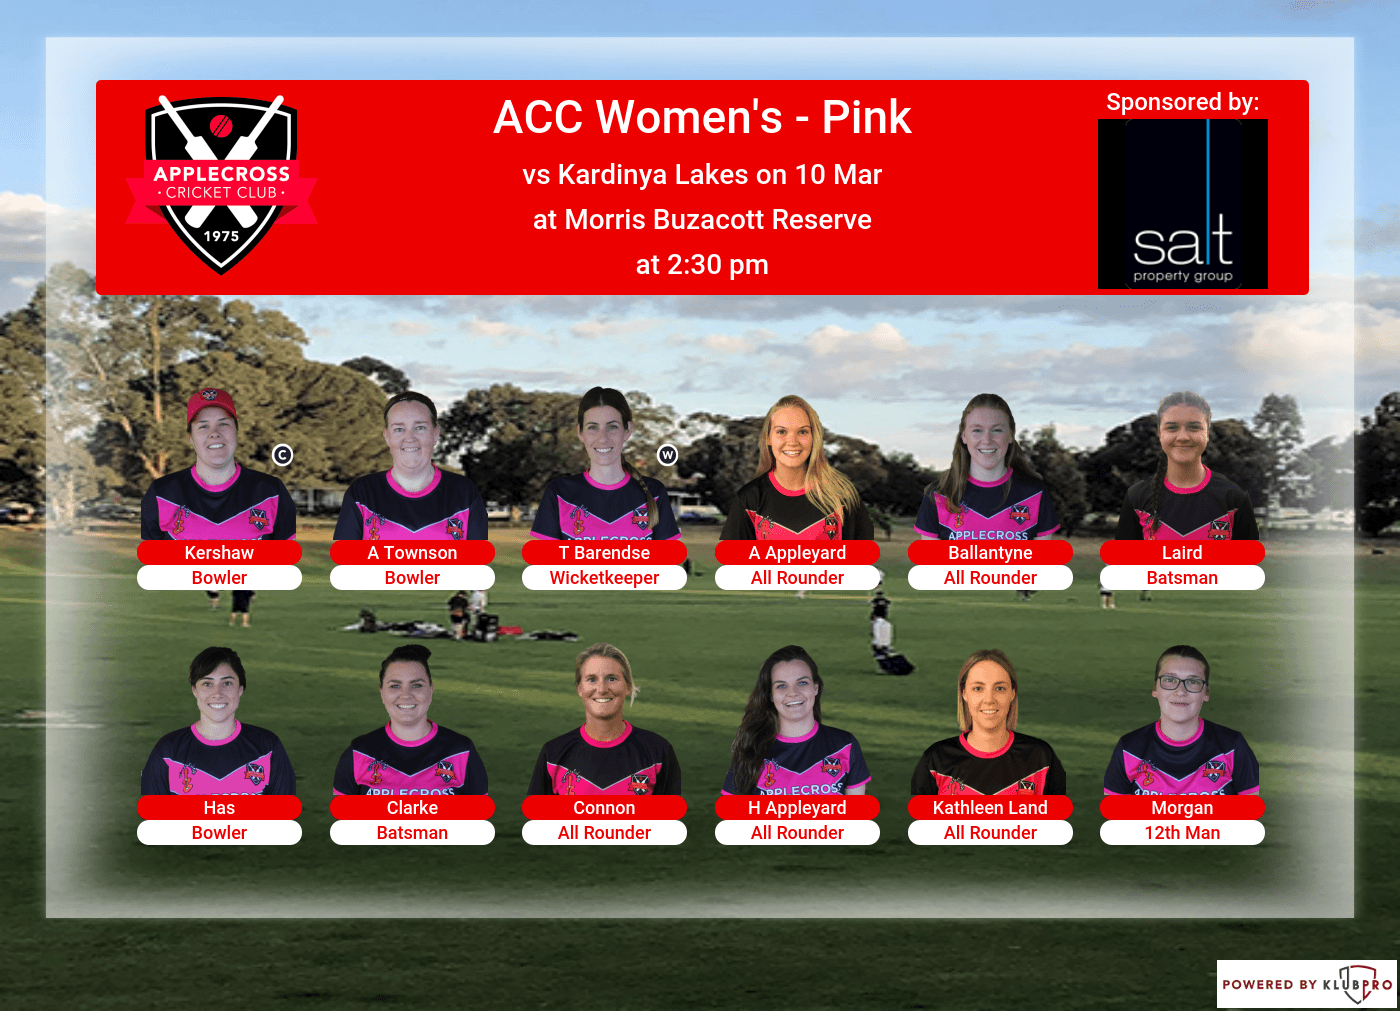 Applecross Cricket Club-team-lineup-ACC Women's - Pink-Round Round 5-1564027028861 (1).png